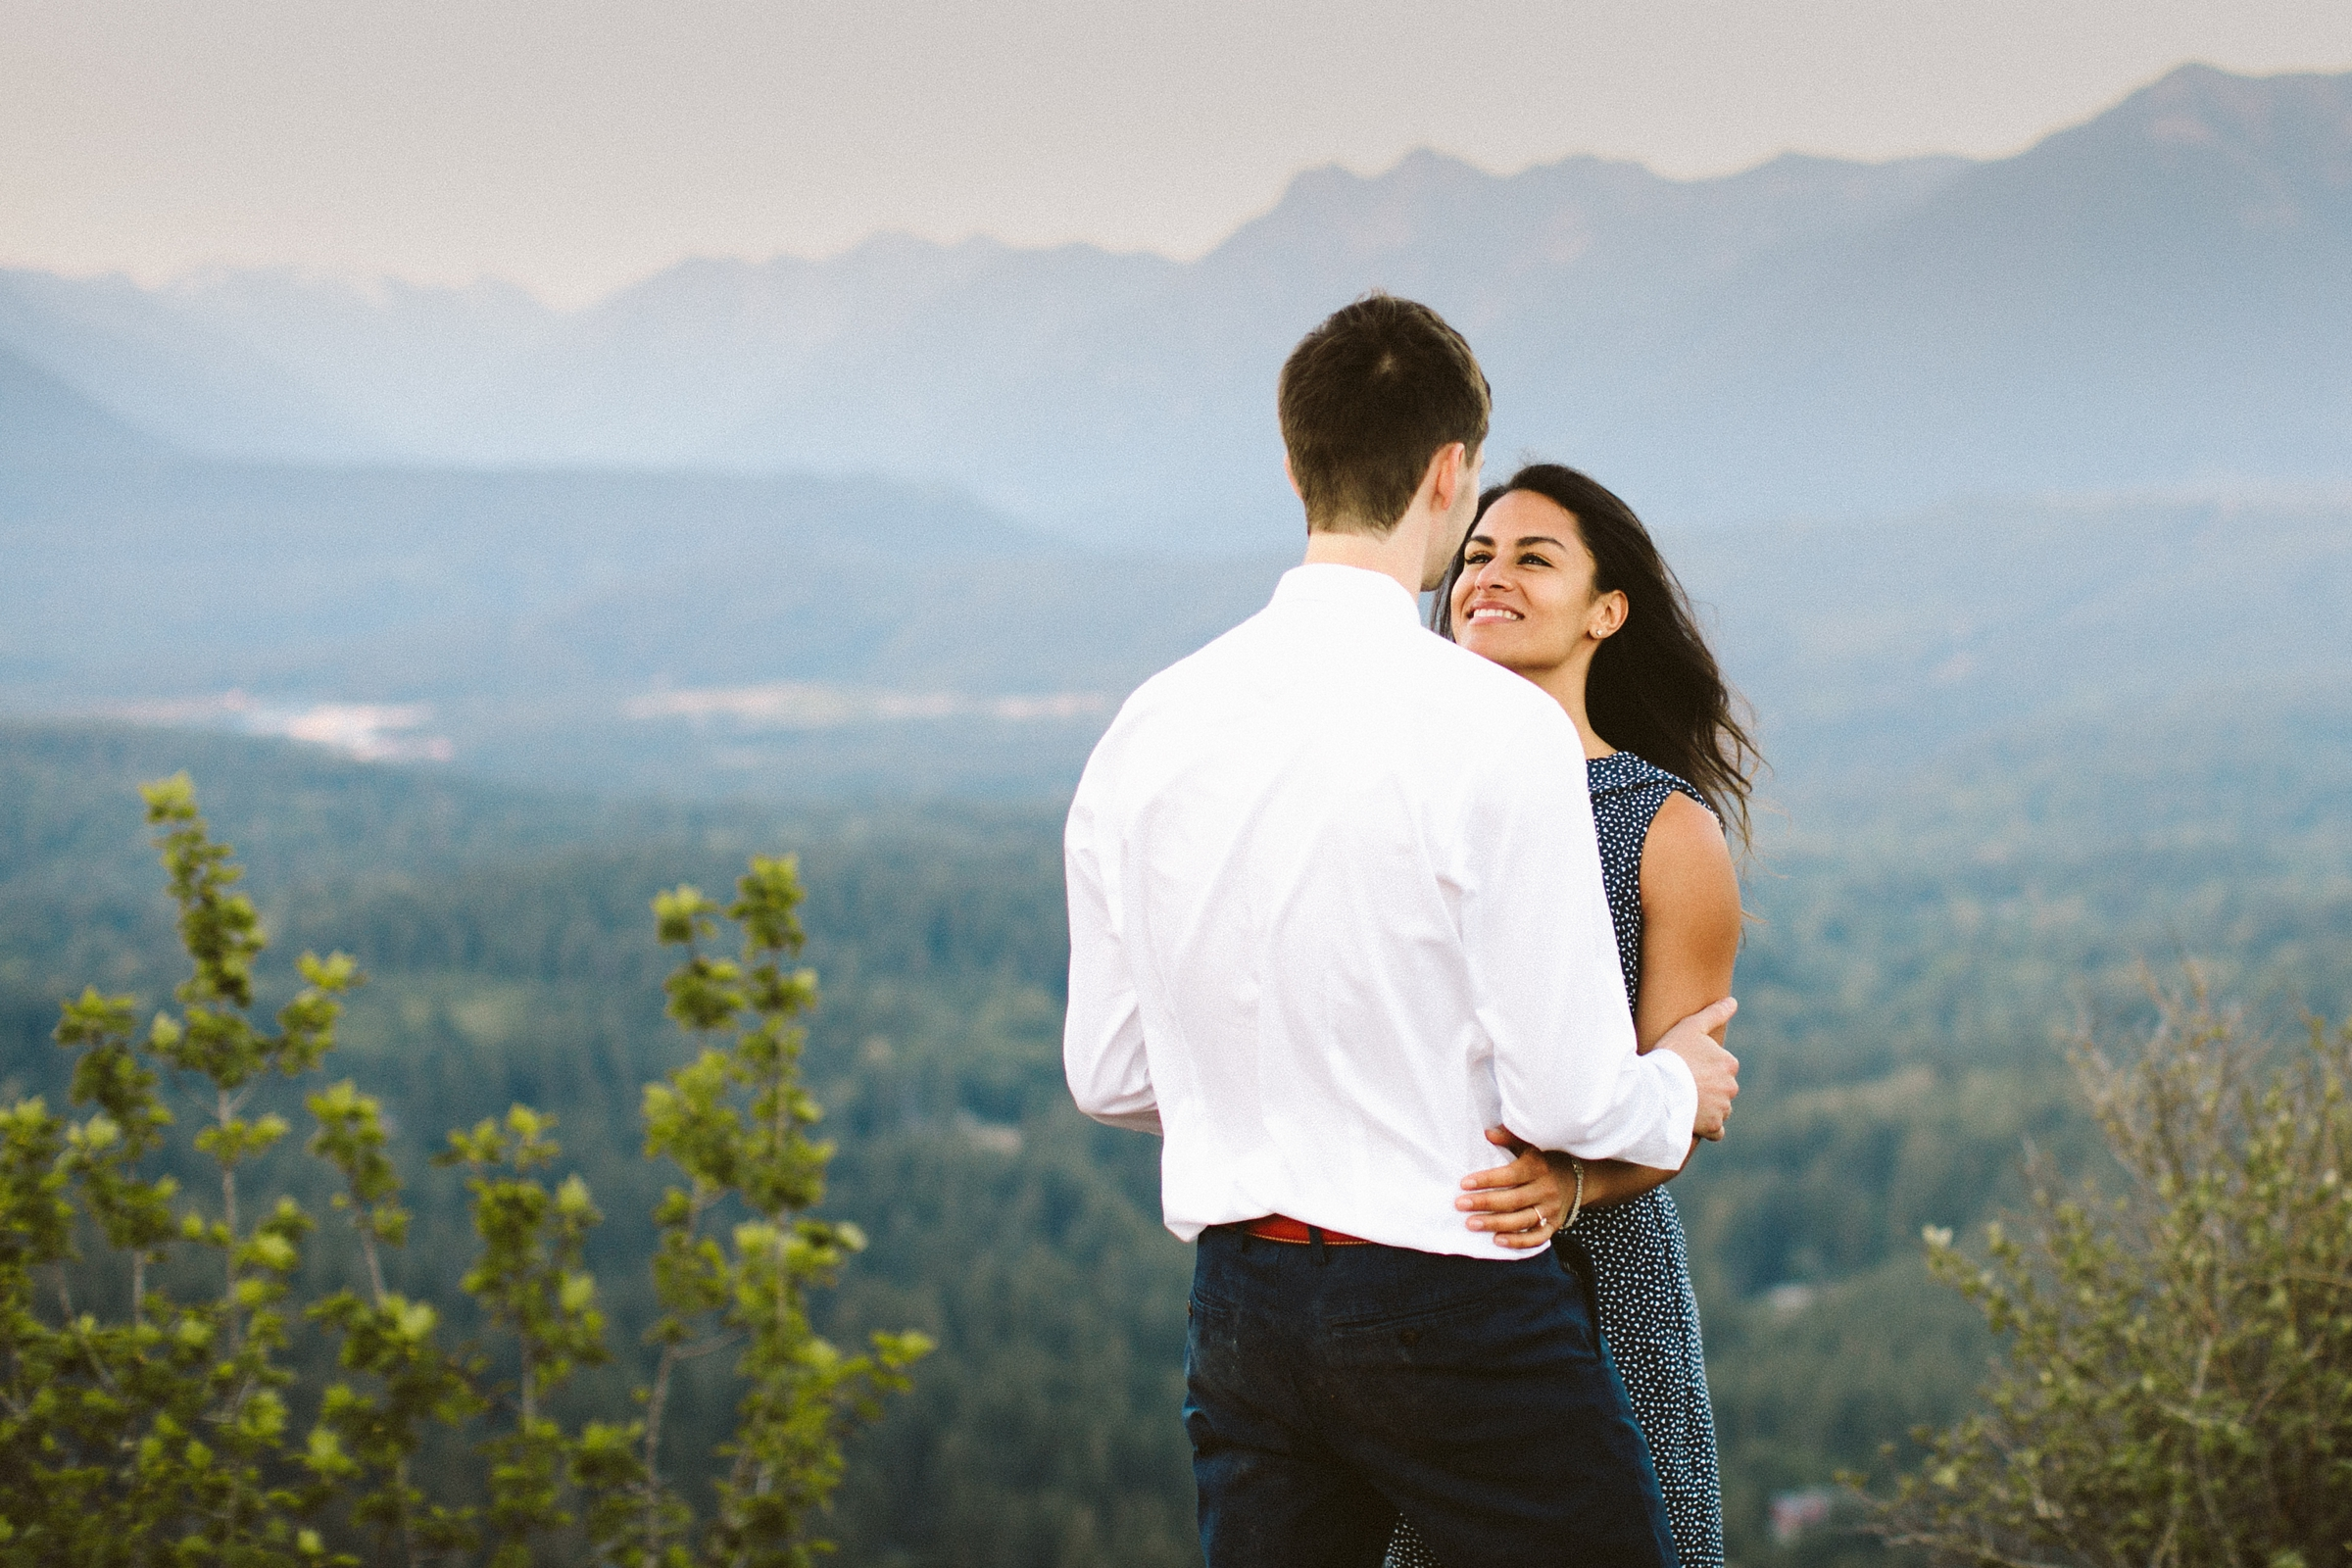 adventure-mountain-top-elopement-photographer-pnw-seattle-washington-wedding-engagement-hike-photography-catie-bergman_0034.jpg